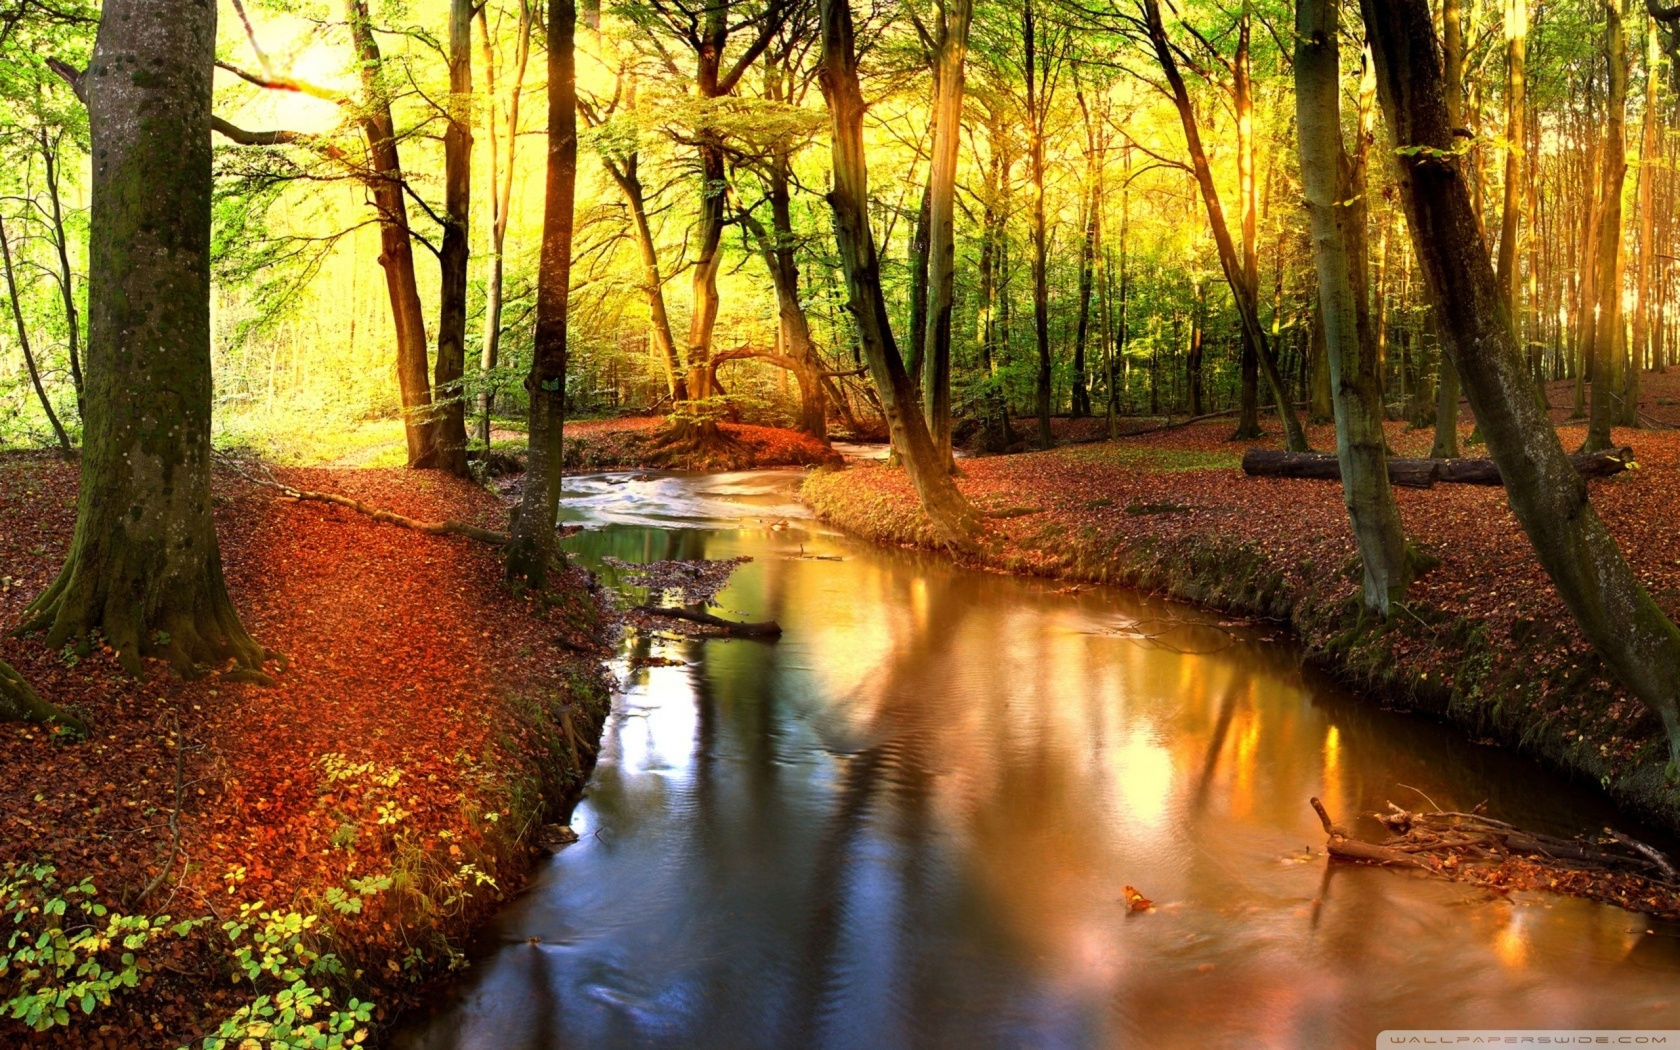 impressive autumn landscape-wallpaper-1680x1050 - 10 000 fonds d